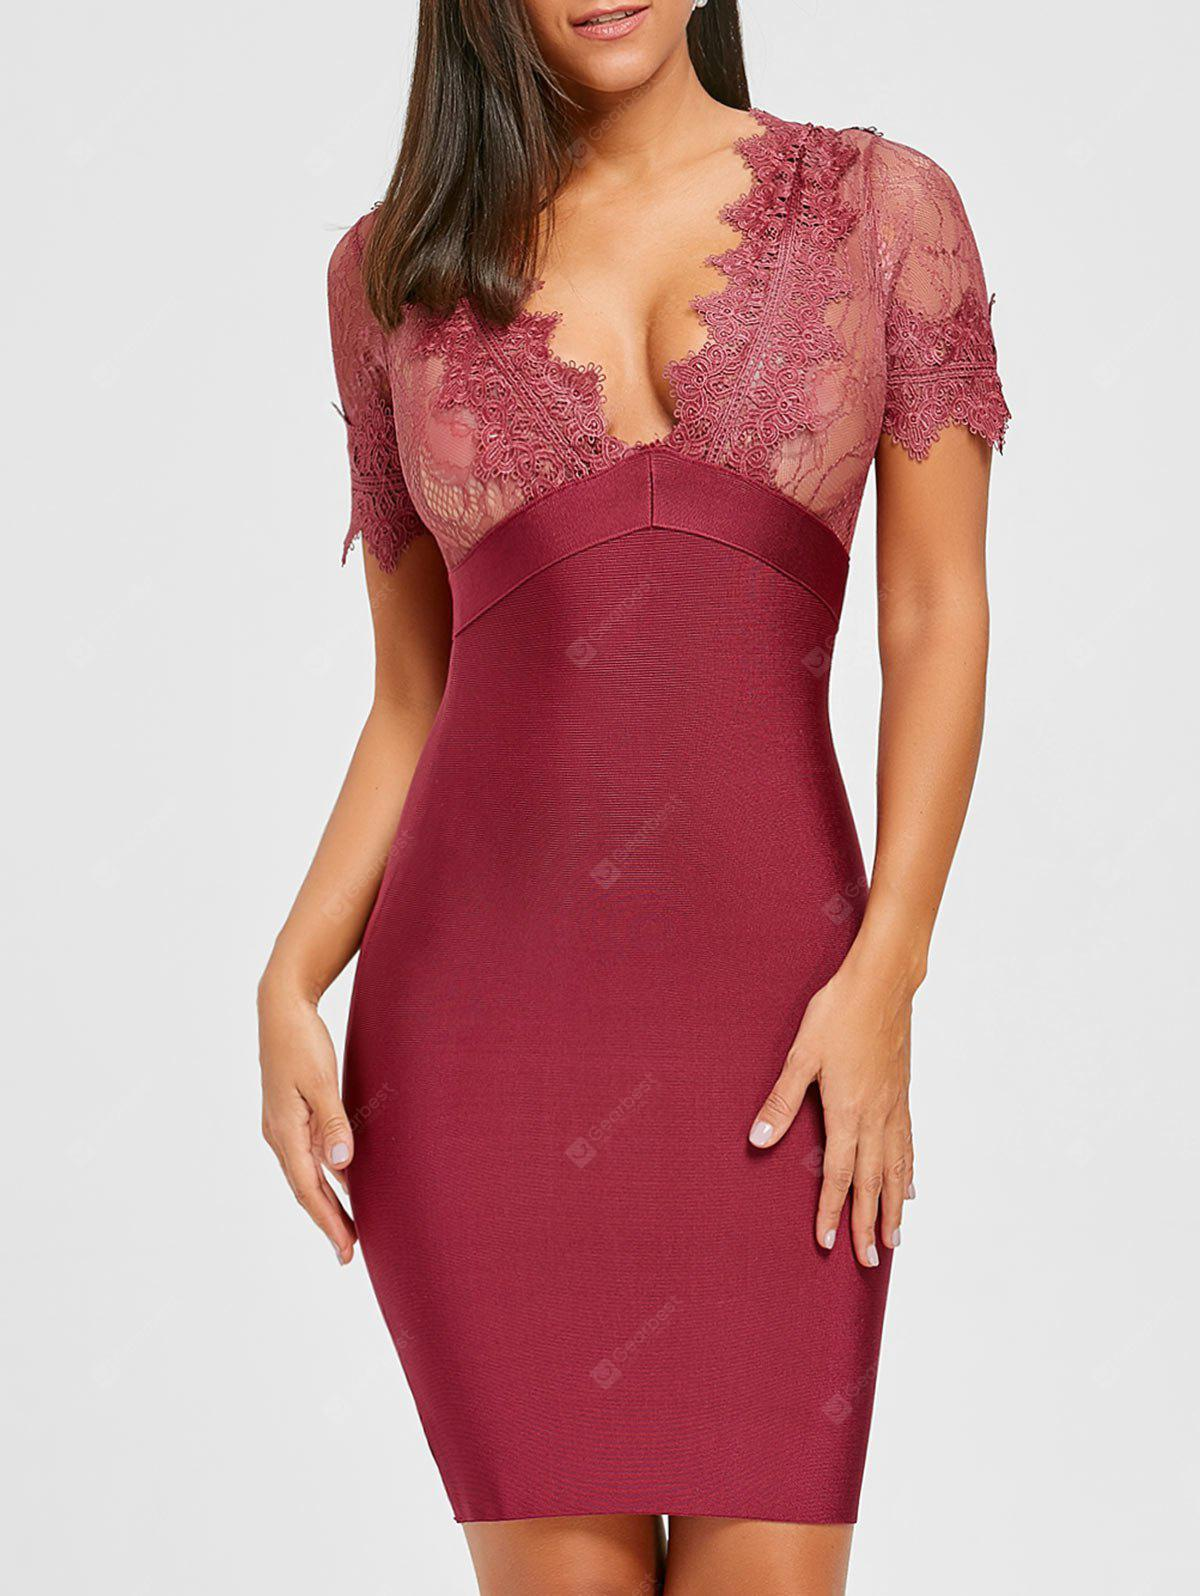 RED M Lace Insert Plunging Neck Bandage Dress